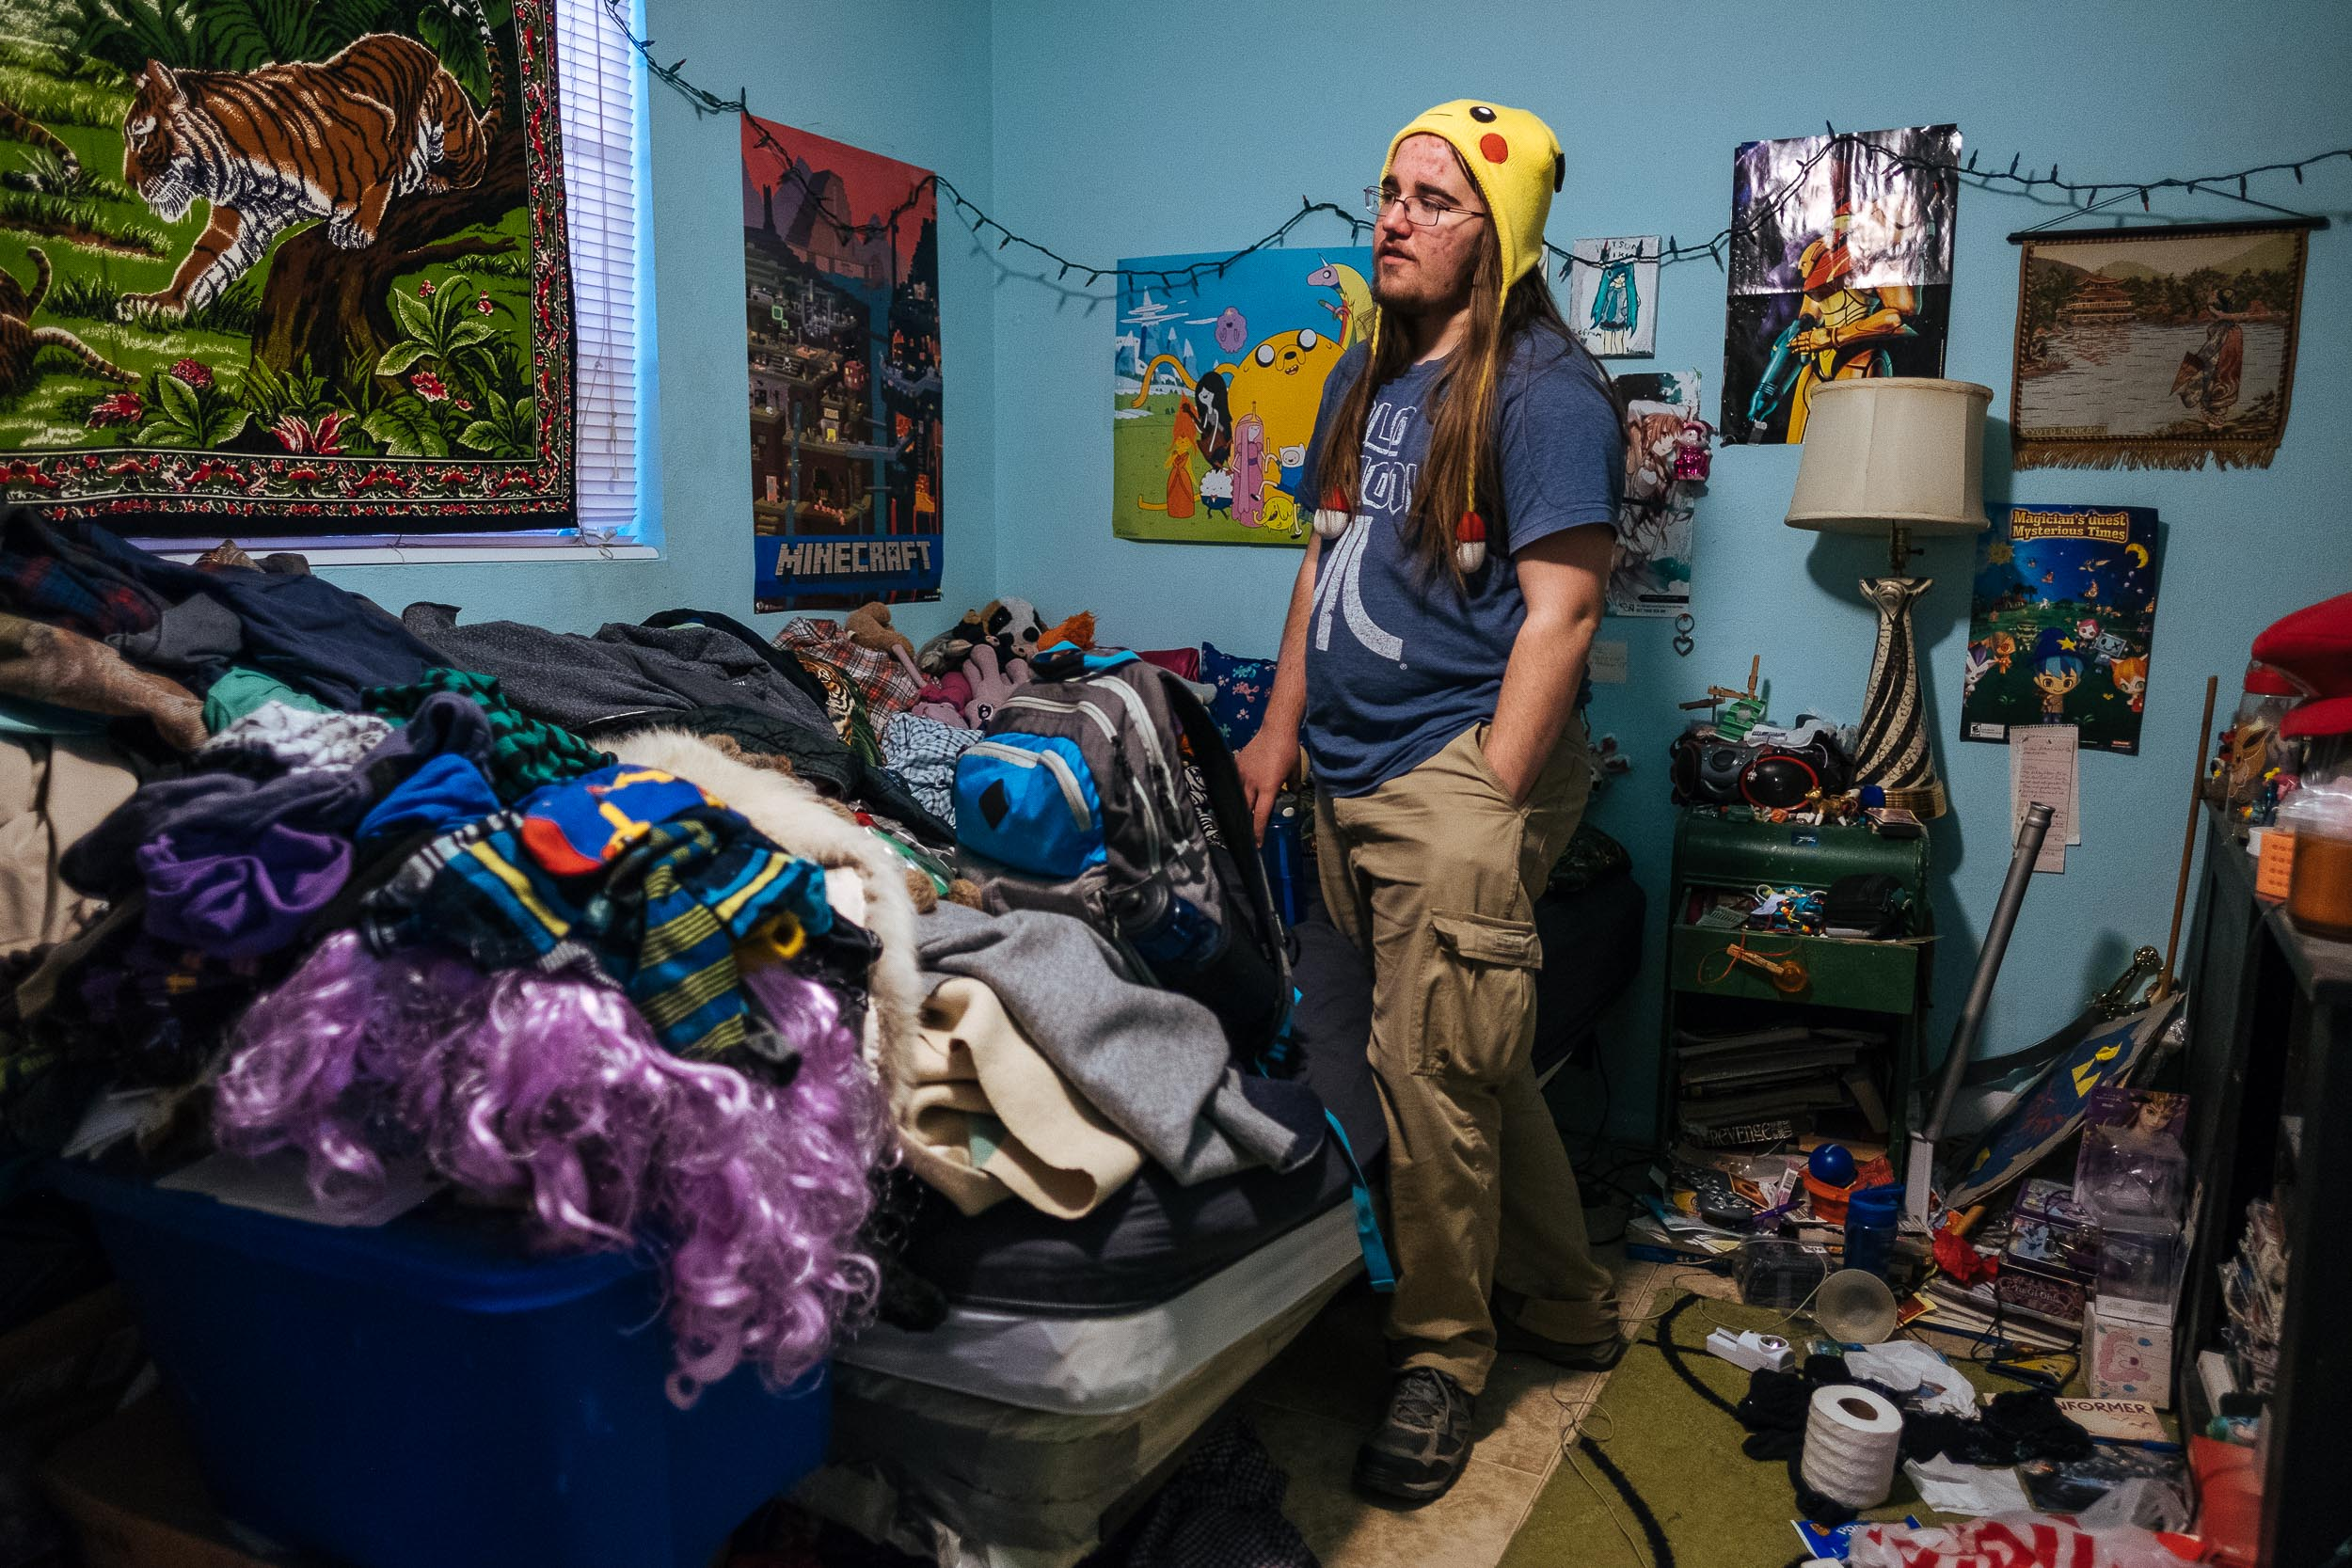 Jenny's son, Zefram, in his bedroom. Zefram is a senior in high school. Despite requiring some special attention scholastically and needing help with navigating change, Jenny describes Zefram as smart and funny. She says Zefram is a good person and that makes her a good mom.